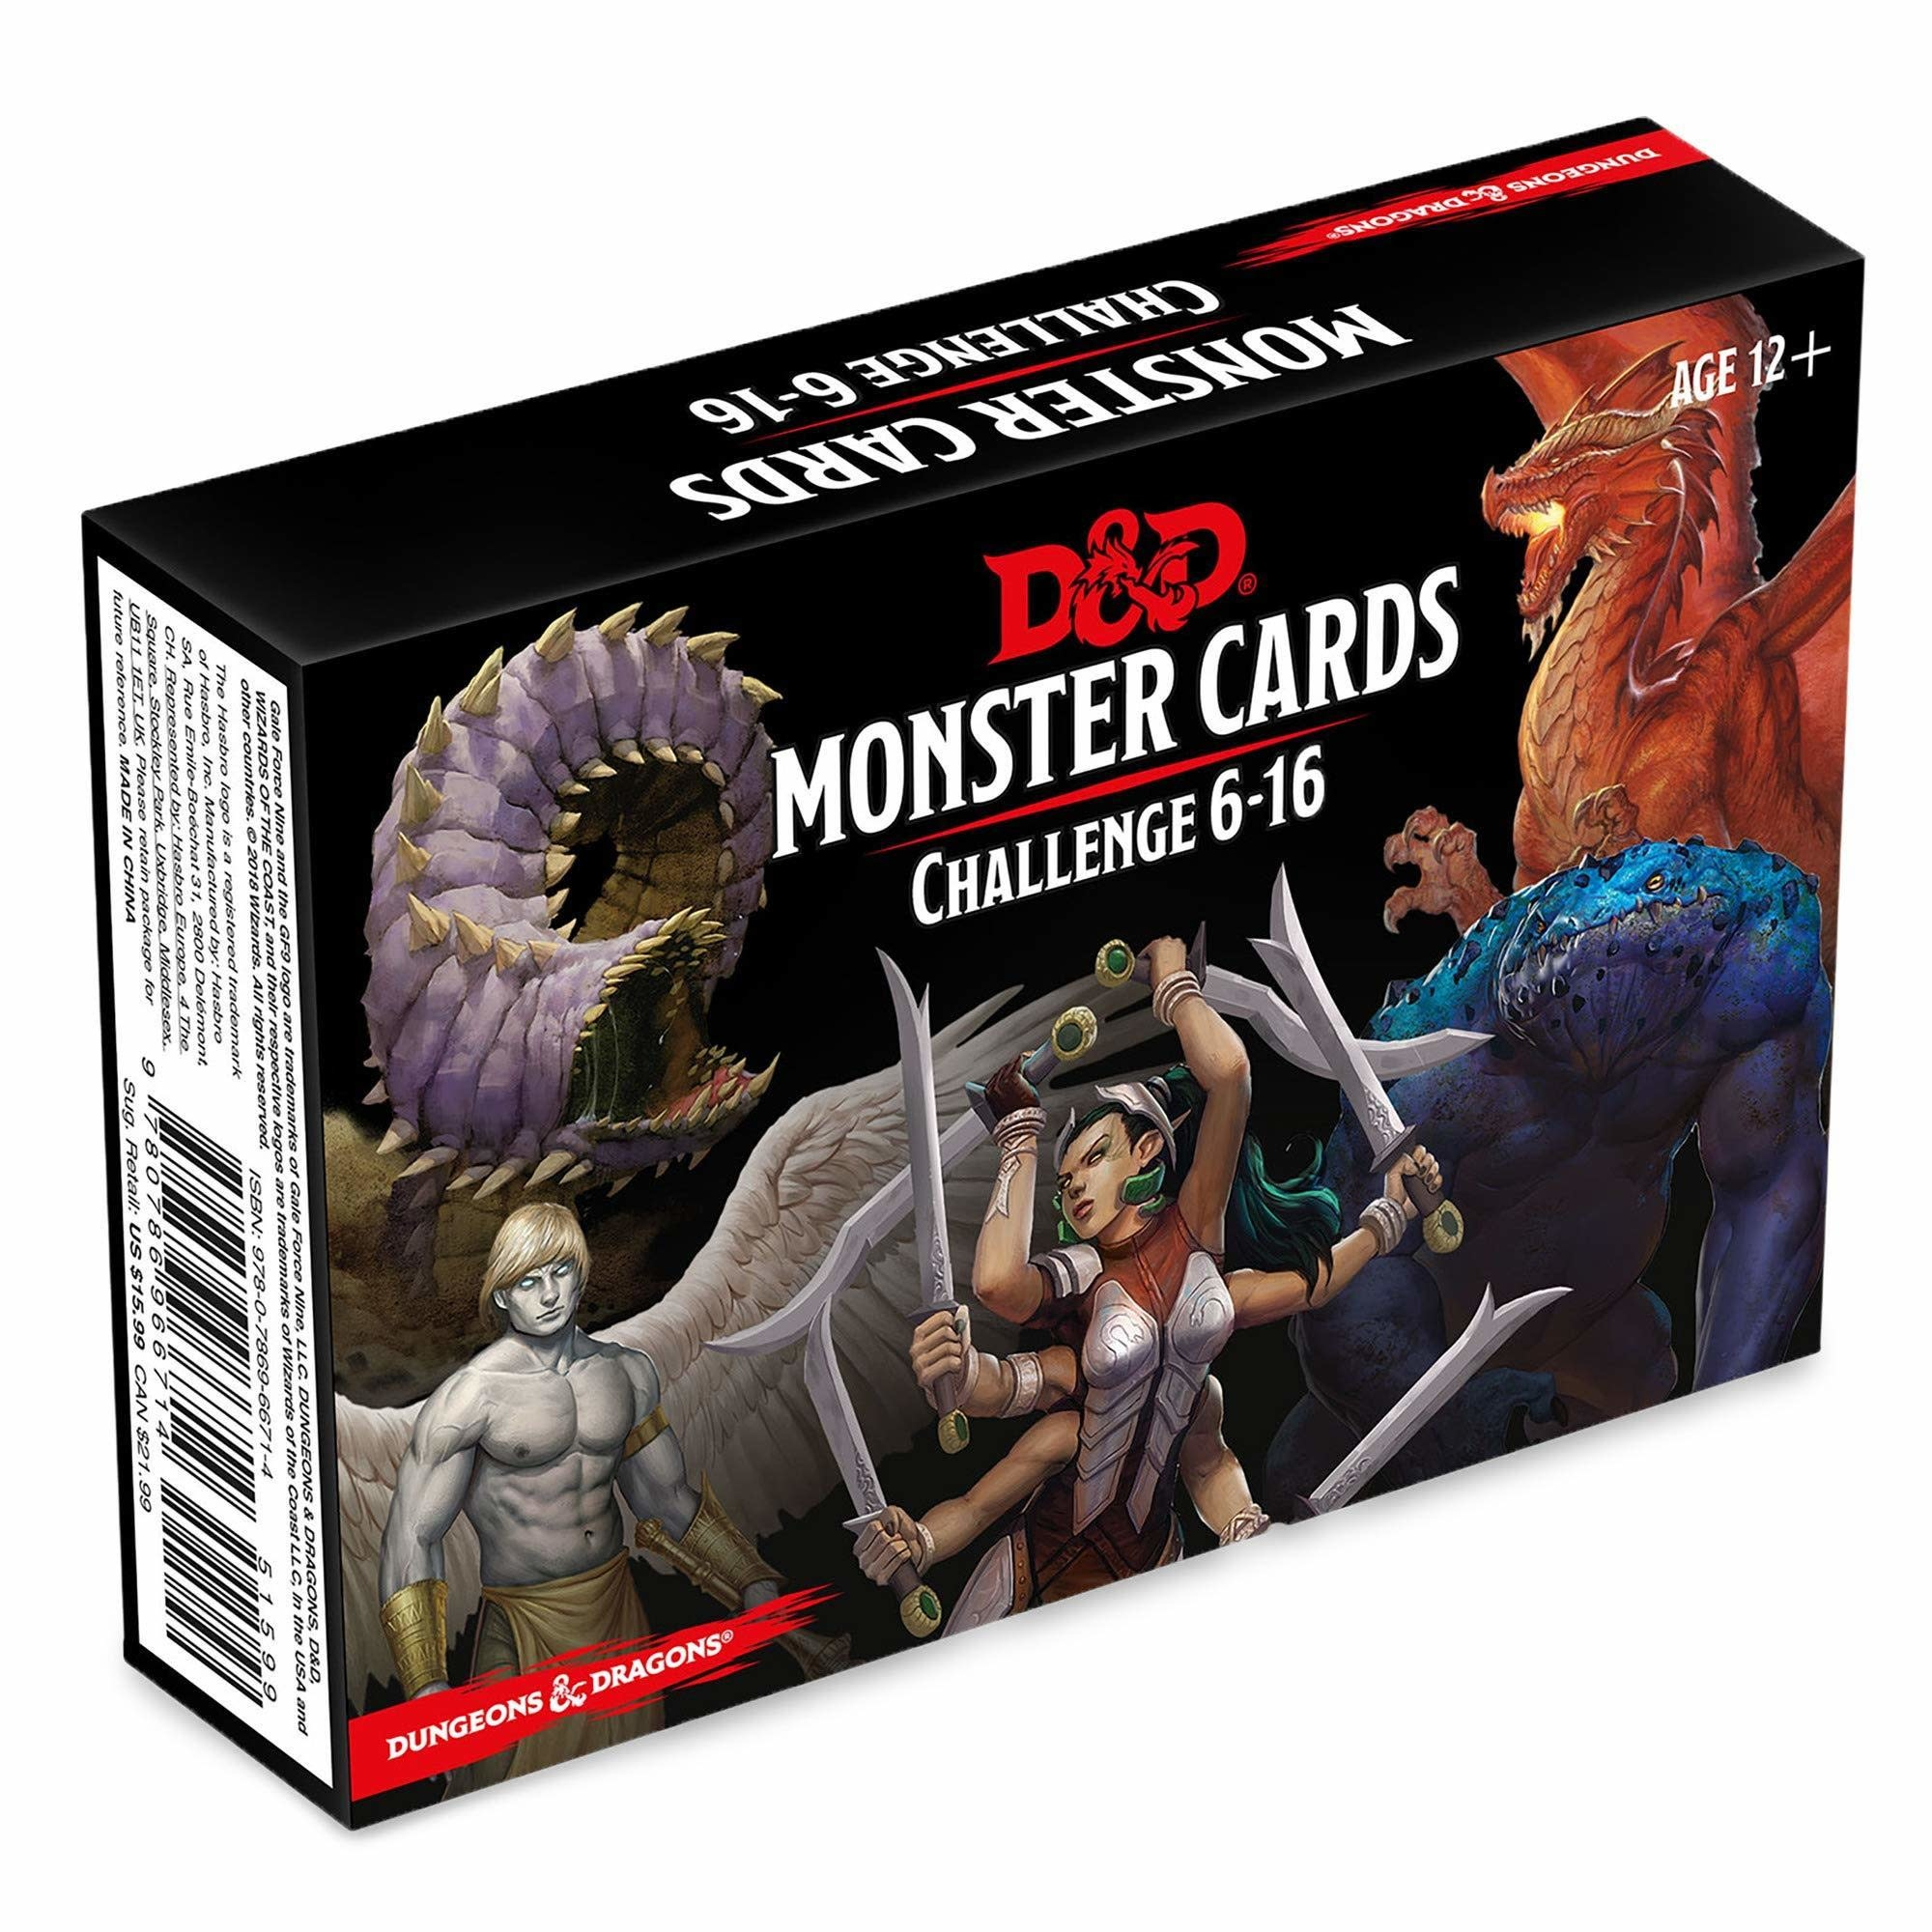 Wizards of the Coast DND MONSTER CARDS: CHALLENGE 6-16